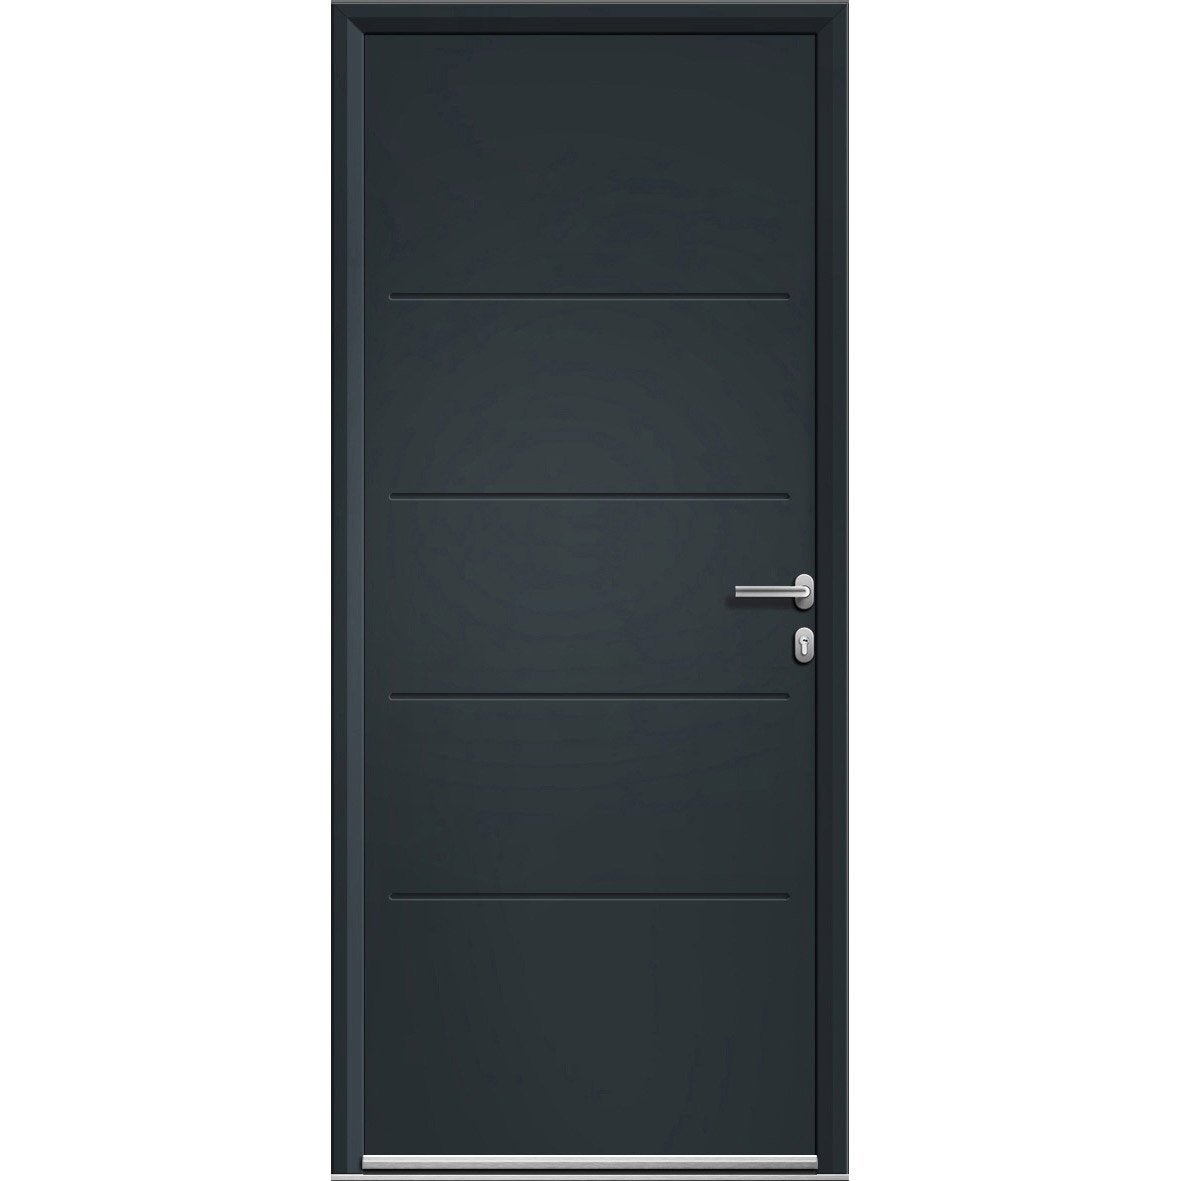 porte d 39 entr e aluminium lineal gris poussant gauche h 215 x l 90 cm. Black Bedroom Furniture Sets. Home Design Ideas